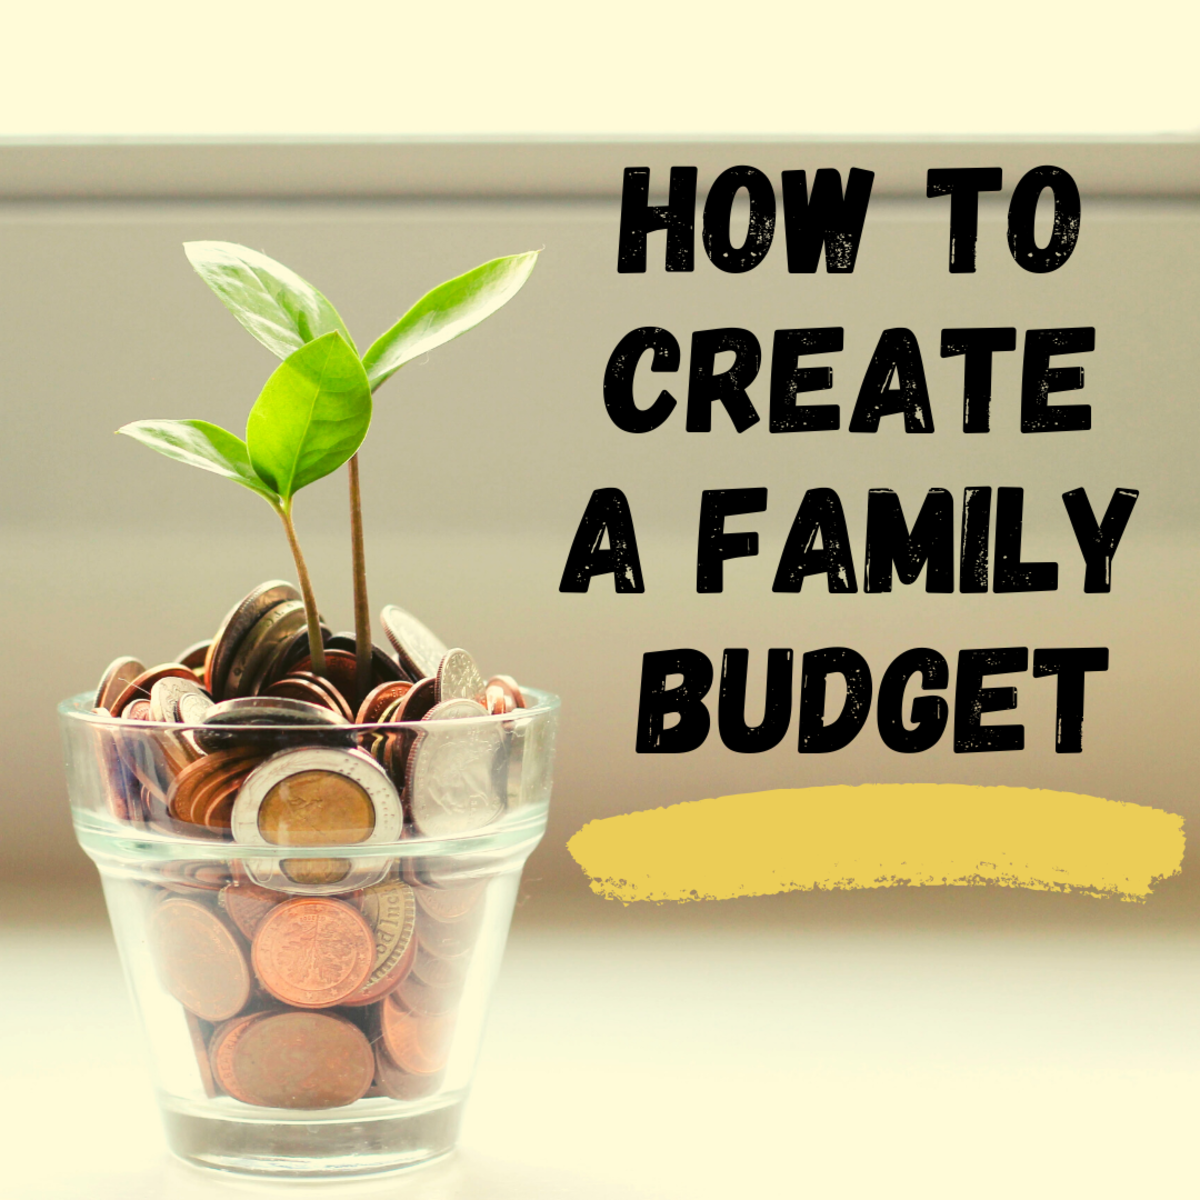 If you budget correctly, having a family doesn't need to cost you a fortune.